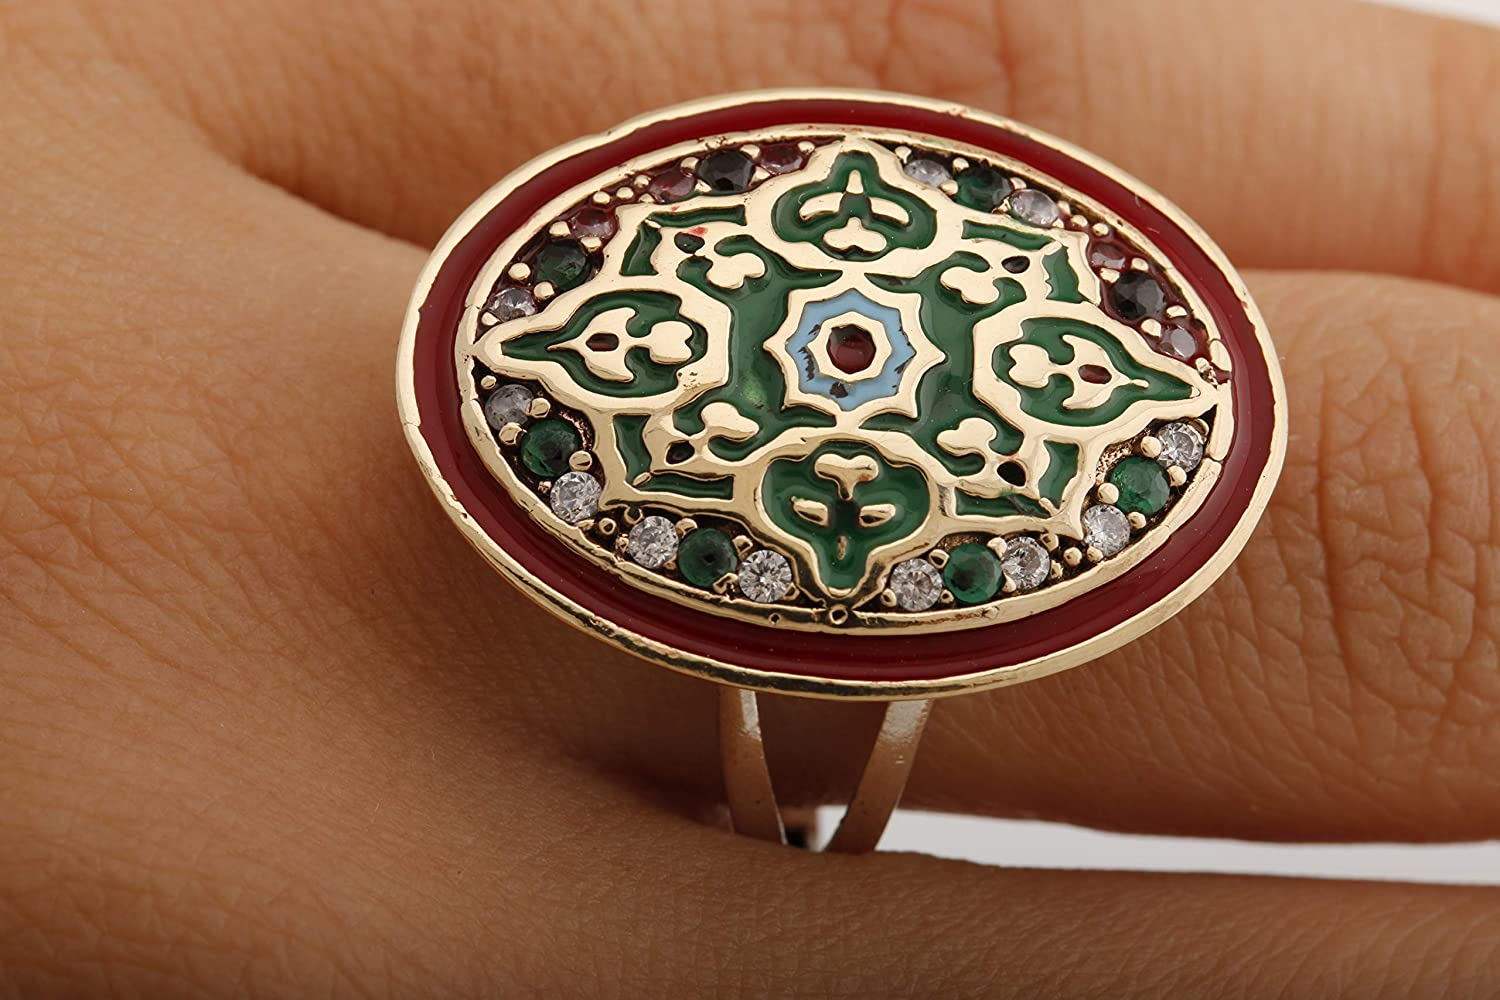 Motif Style Turkish Handmade All Authentic Jewelry Oval Shape Red Enamel and Round Cut Emerald Topaz 925 Sterling Silver Ring Size All